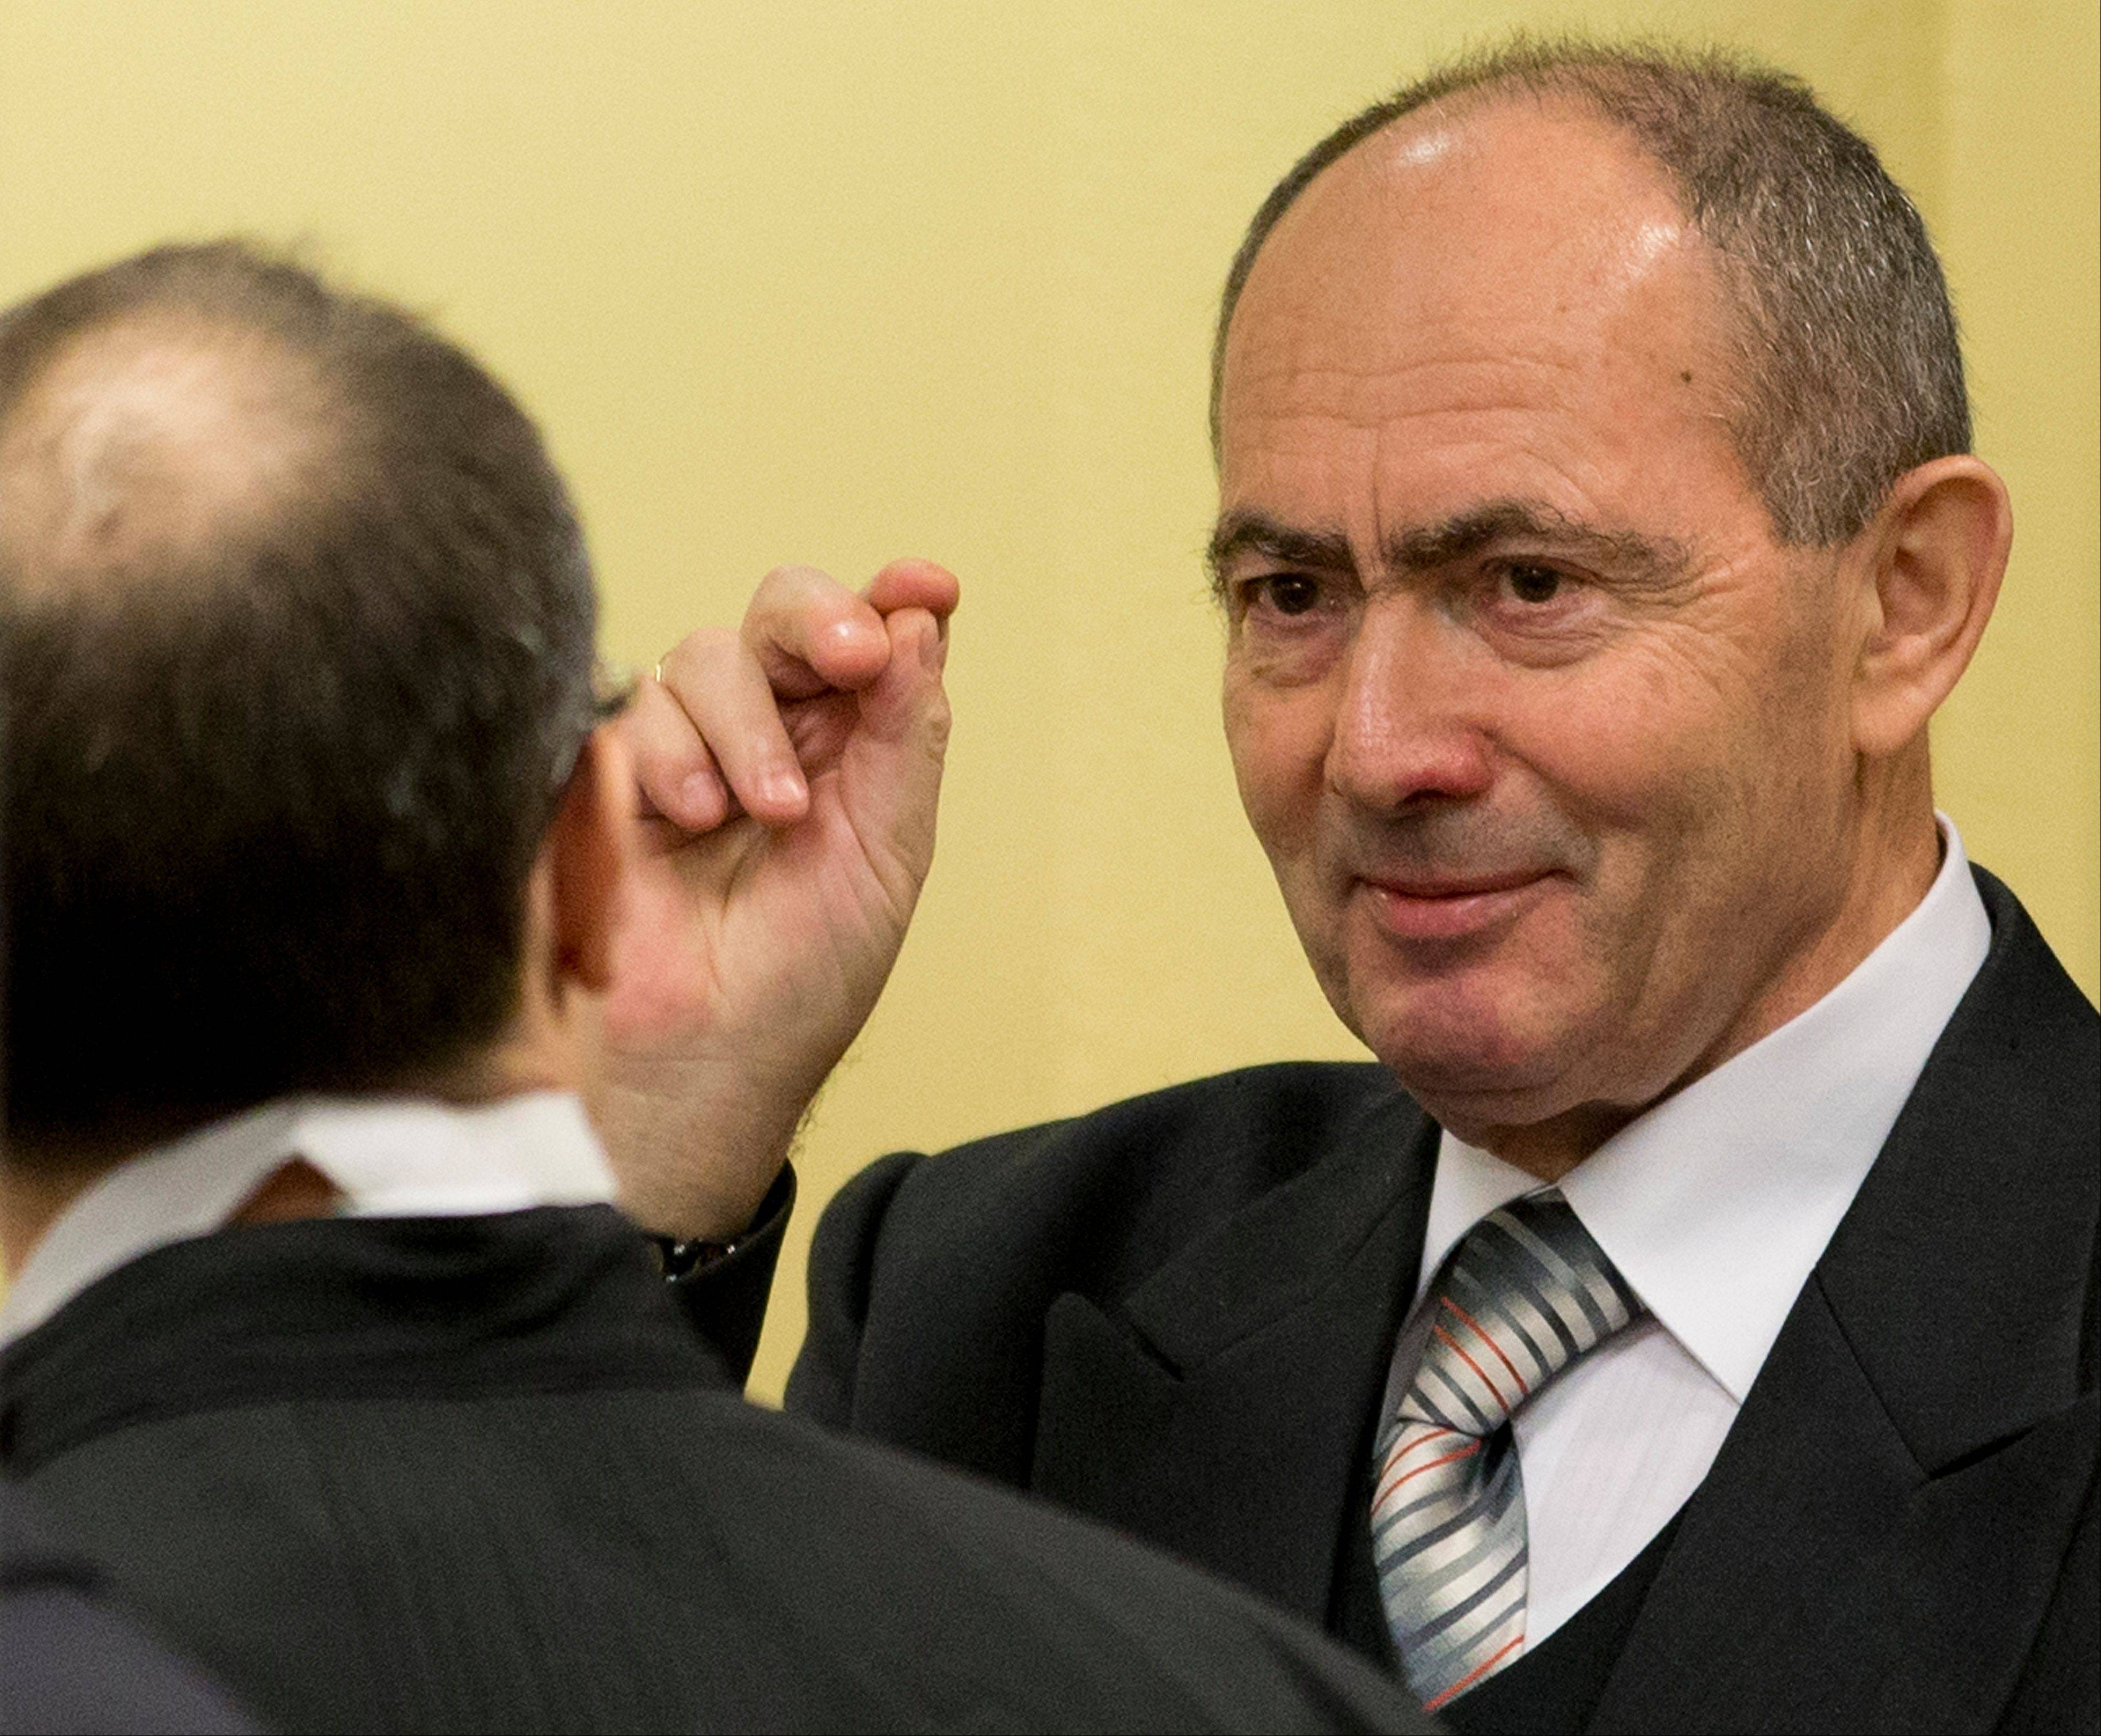 Zdravko Tolimir, right, a former high-ranking Bosnian Serb army officer charged with crimes including genocide in the 1995 Srebrenica massacre, crosses himself as he waits for the Yugoslav war crimes tribunal to deliver its judgment. The tribunal convicted him and sentenced him to life imprisonment.